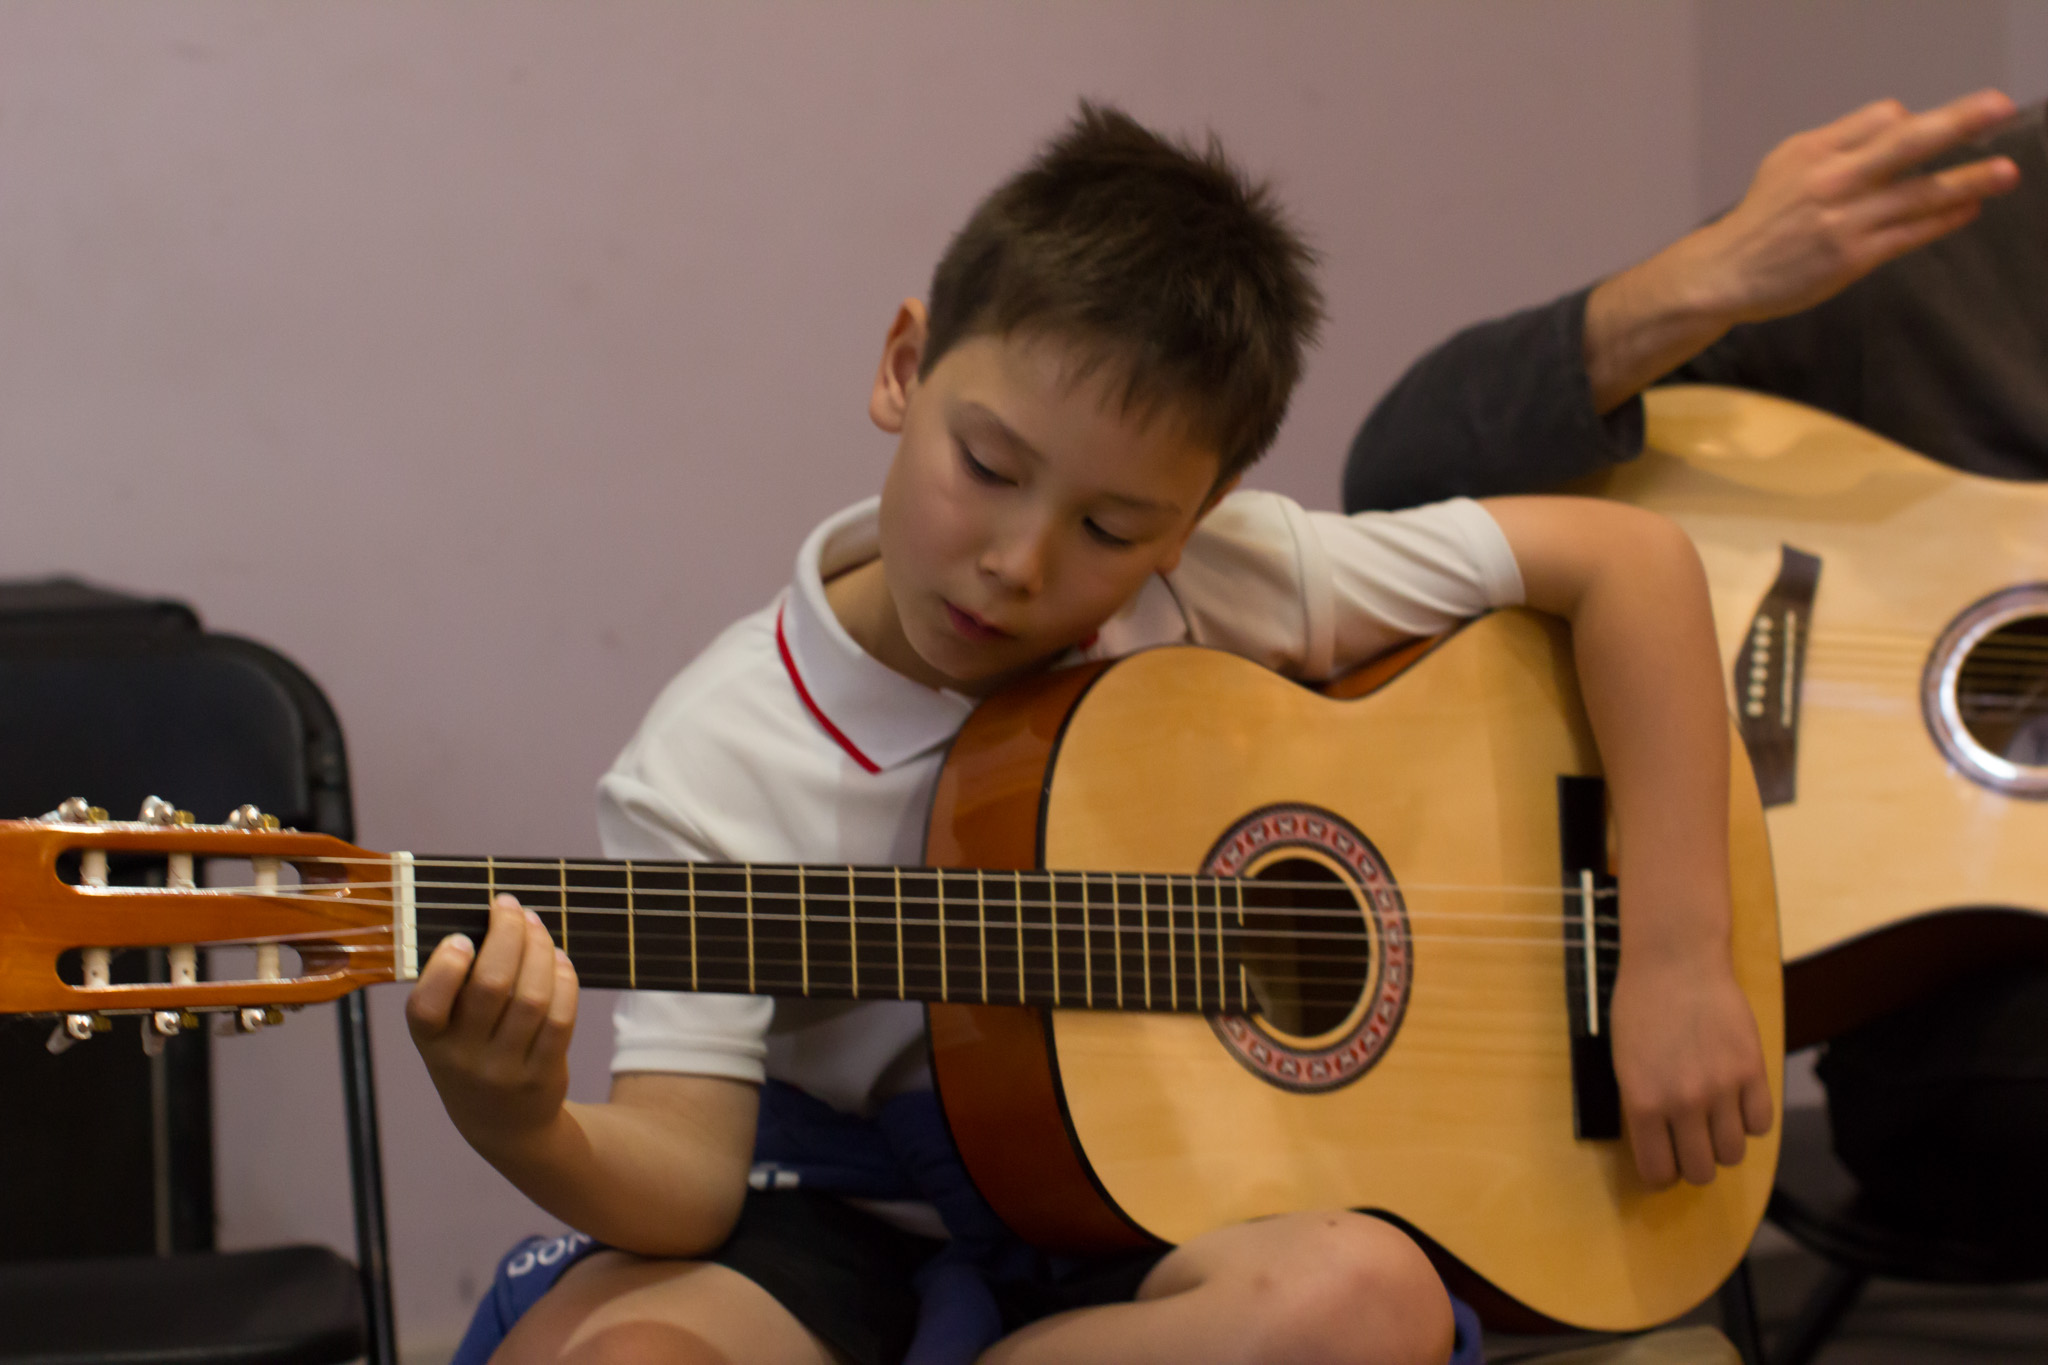 Guitar student Aiden playing It's A Long Way To The Top by AC/DC